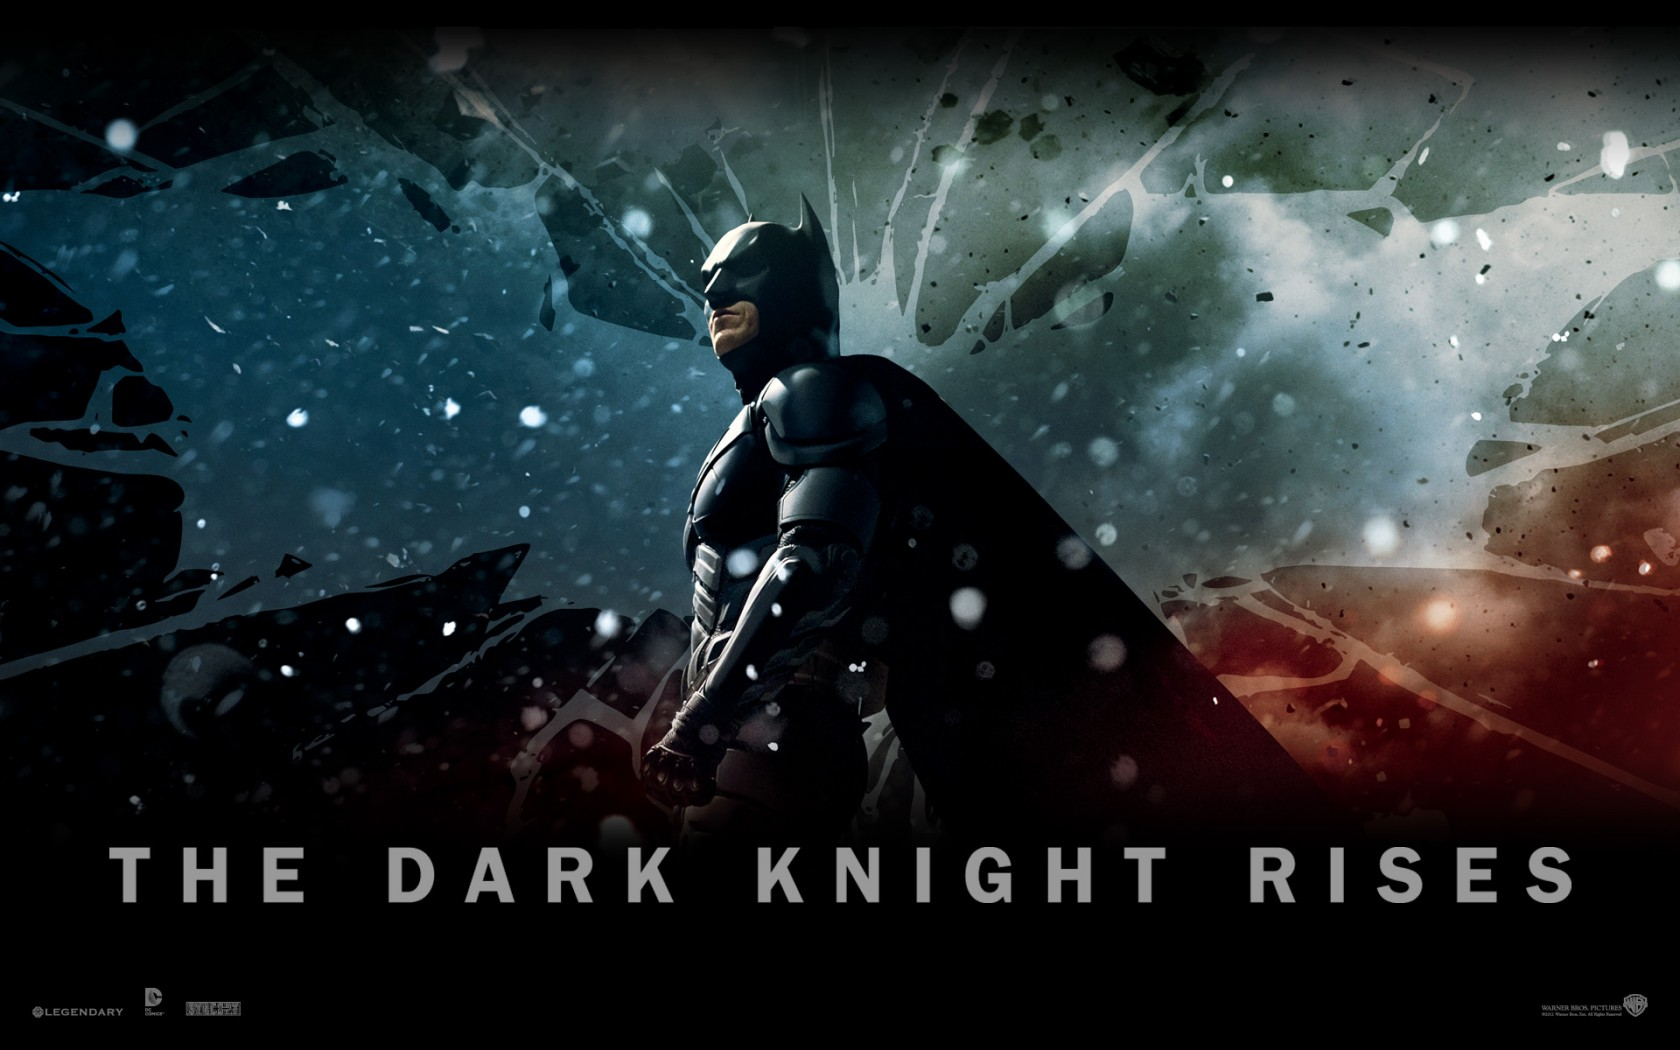 Dark Knight Rises Hd Wallpaper The Dark Knight Rises Official Wallpapers Hd Wallpapers